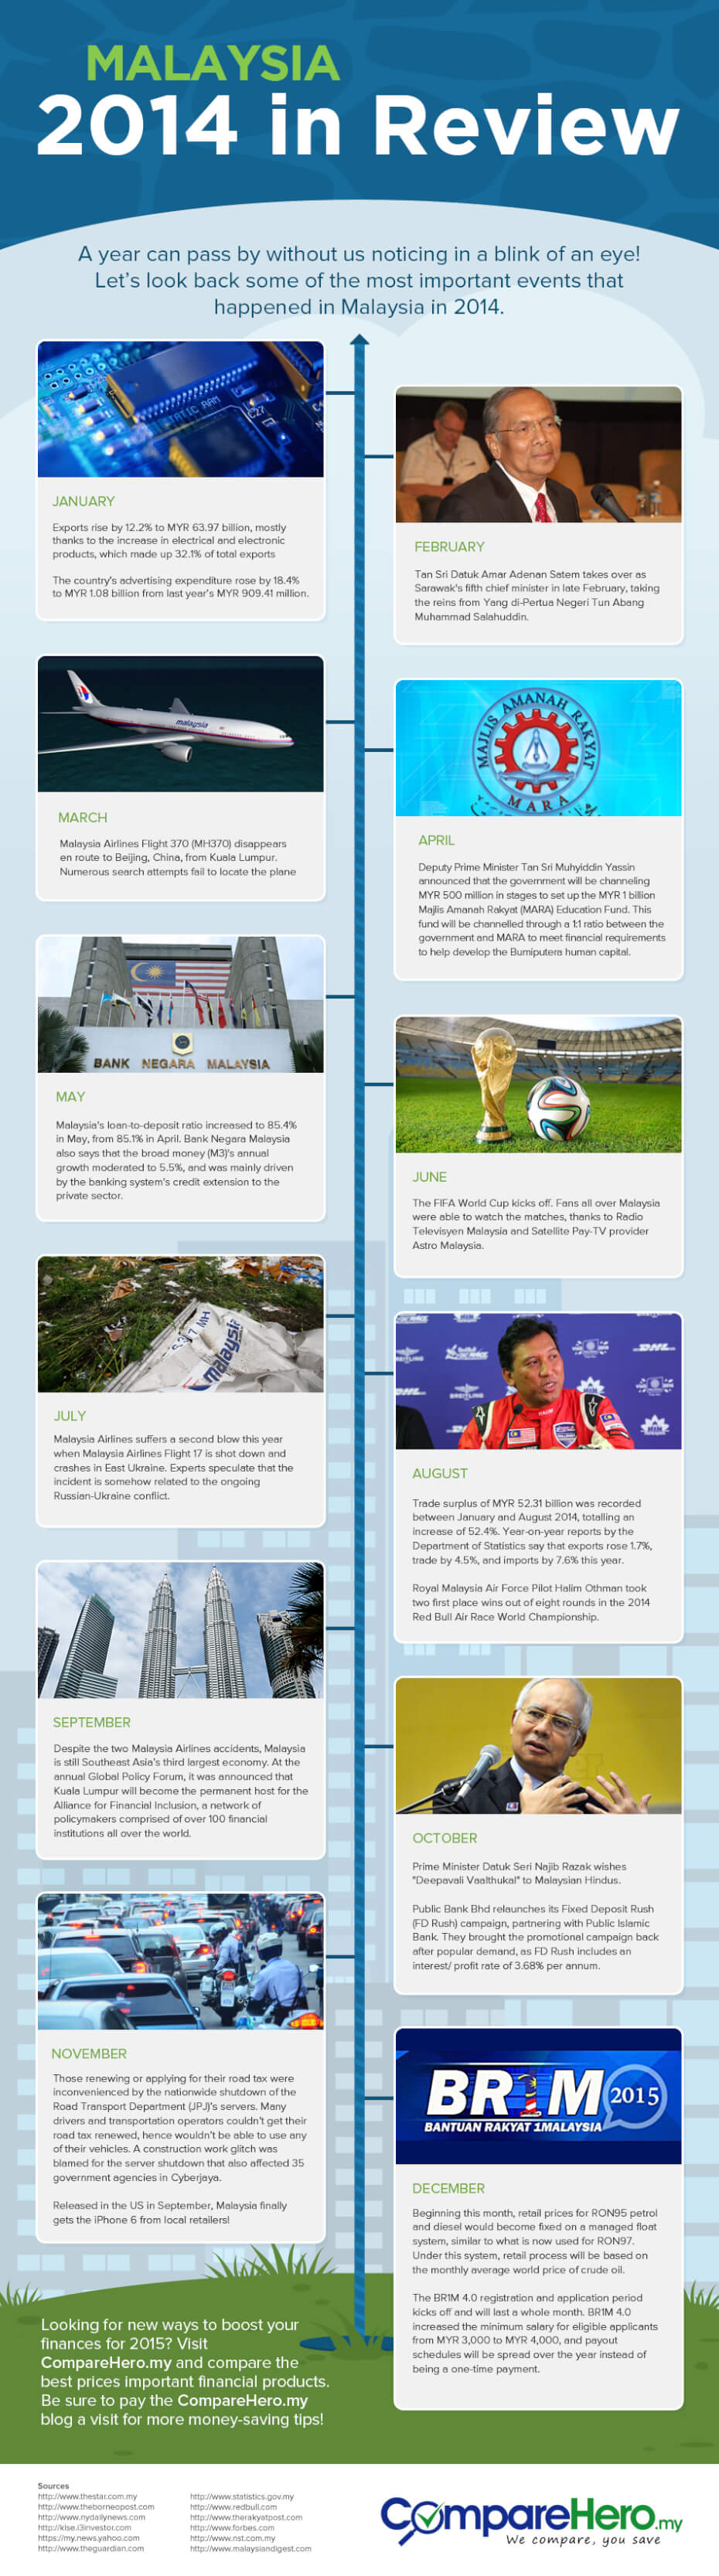 Malaysia 2014 Year in Review Infographic